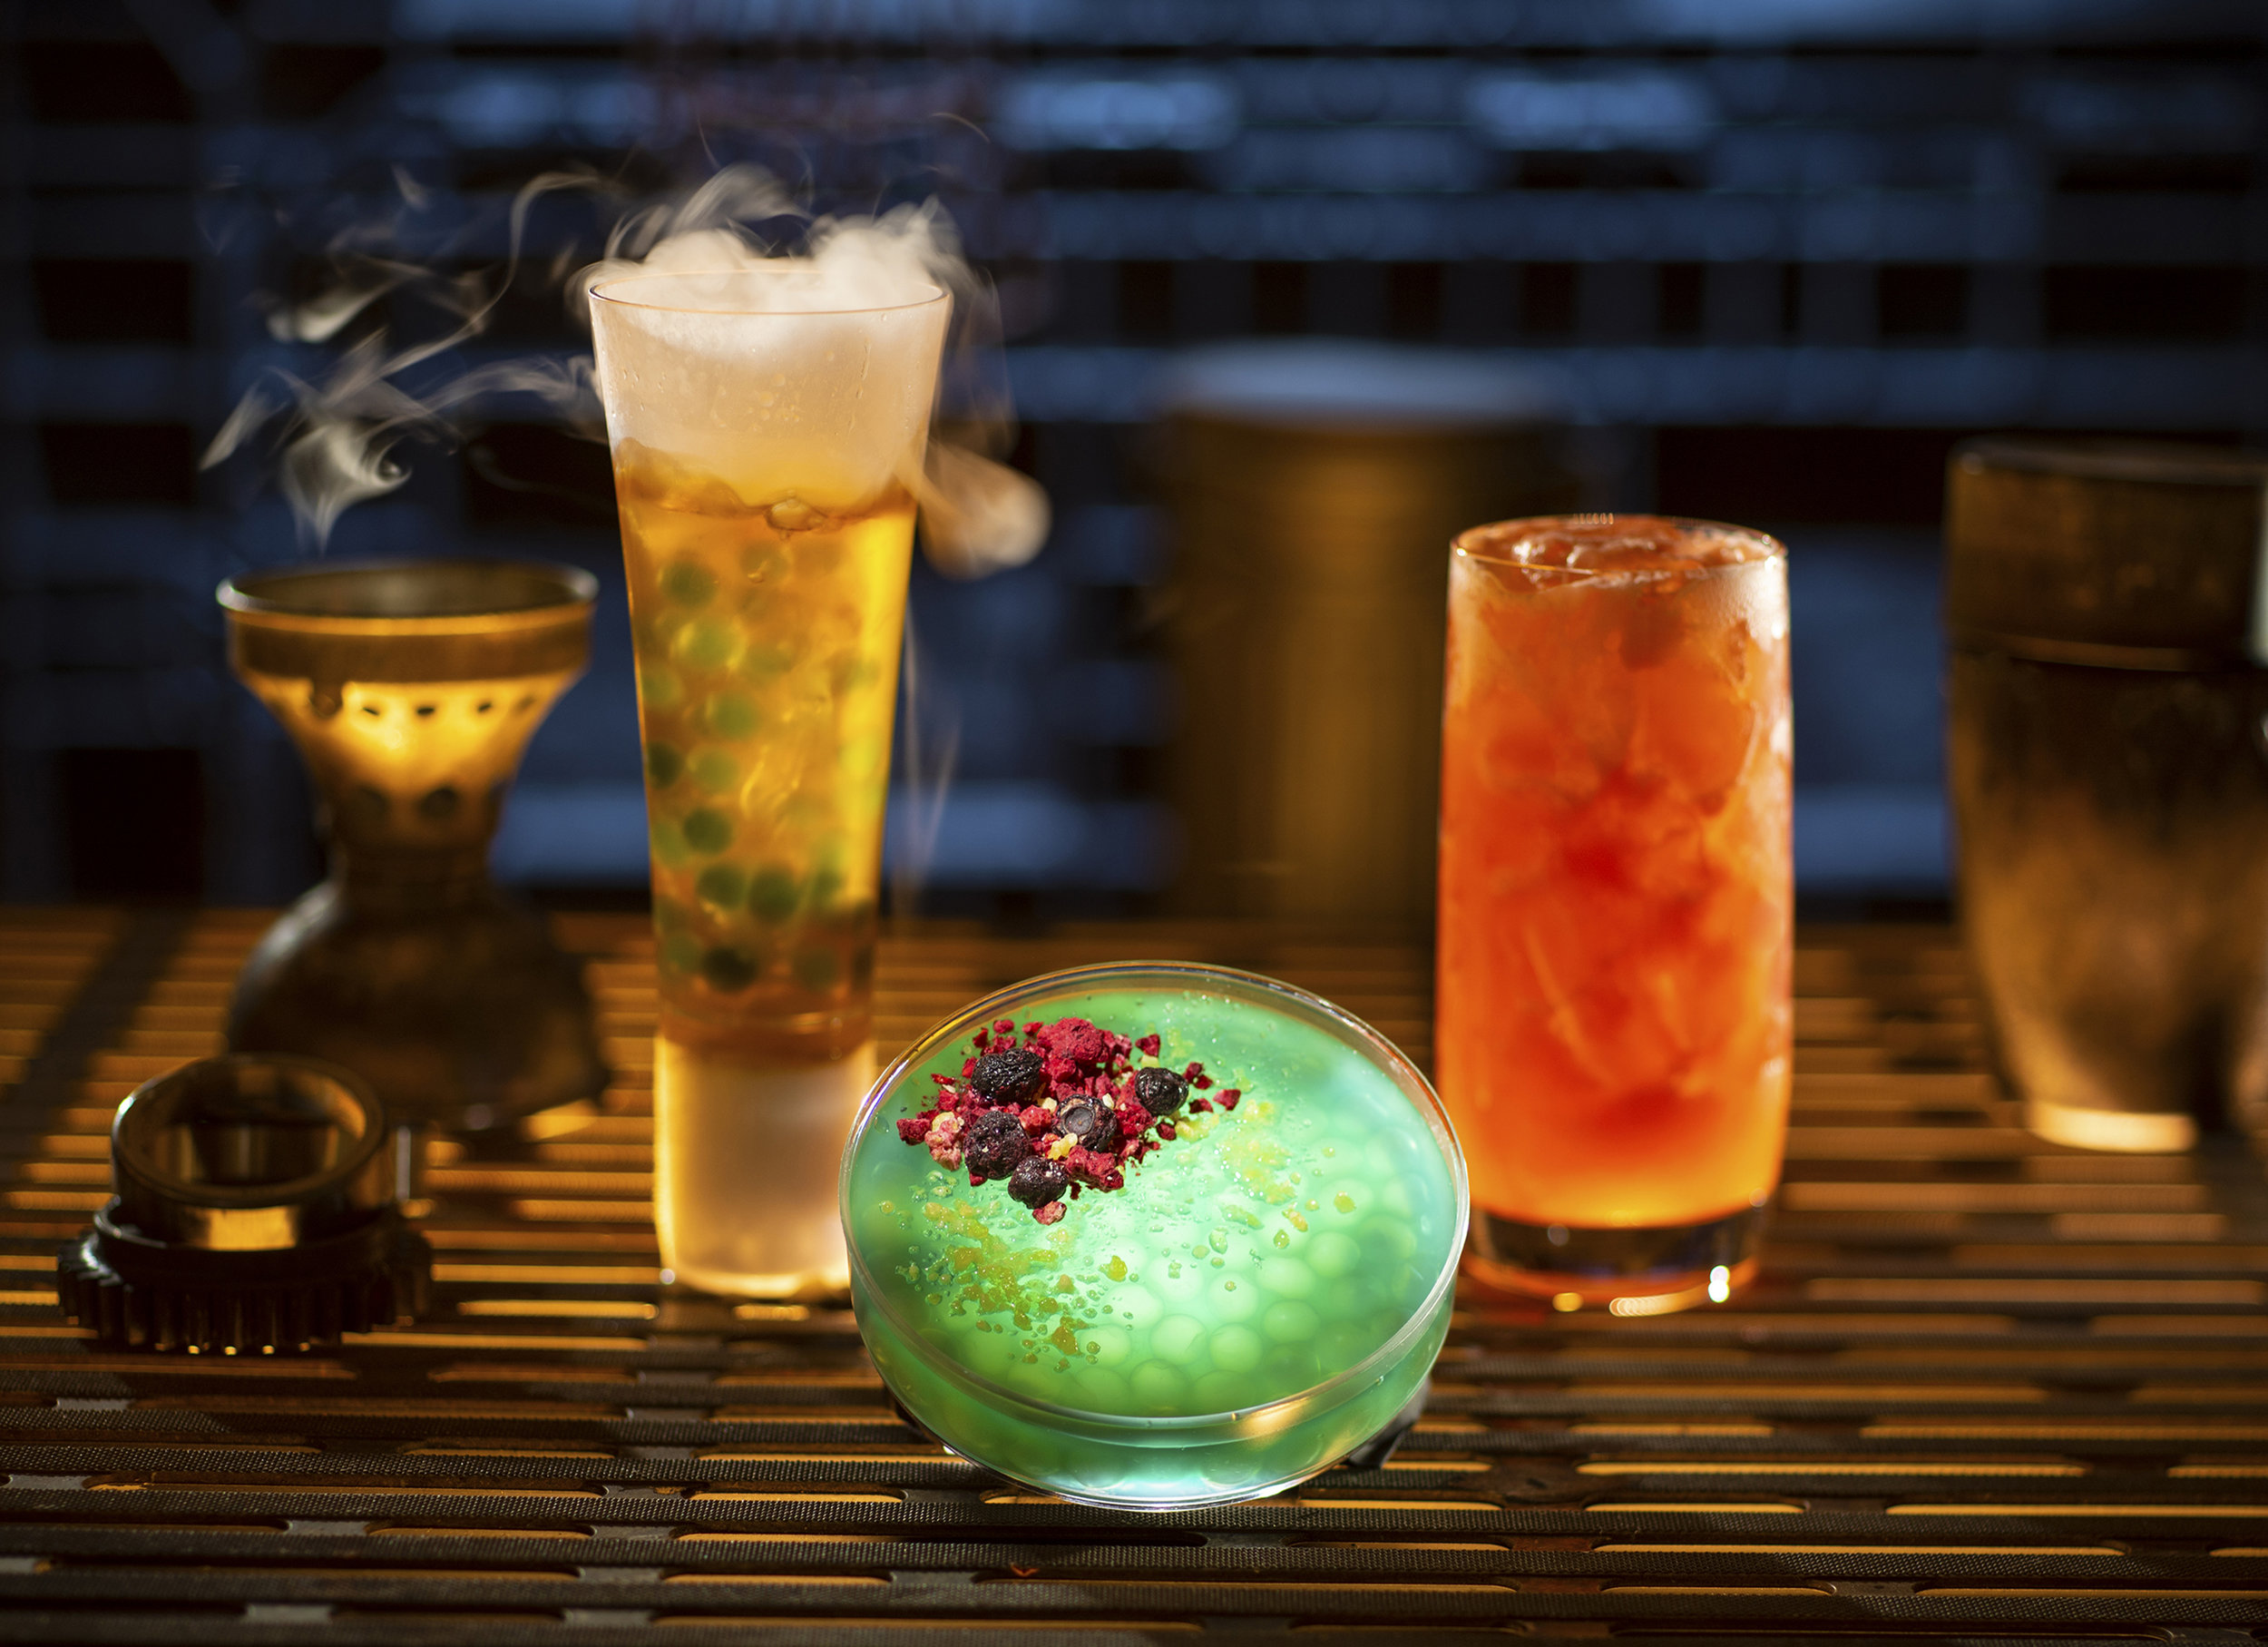 Guests will discover innovative and creative concoctions from around the galaxy at Star Wars: Galaxy's Edge at Disneyland Park in Anaheim, California and at Disney's Hollywood Studios in Lake Buena Vista, Florida. Left to right, non-alcoholic drinks: Carbon Freeze, Oga's Obsession provision and Cliff Dweller can be found at Oga's Cantina. (Kent Phillips/Disney Parks)